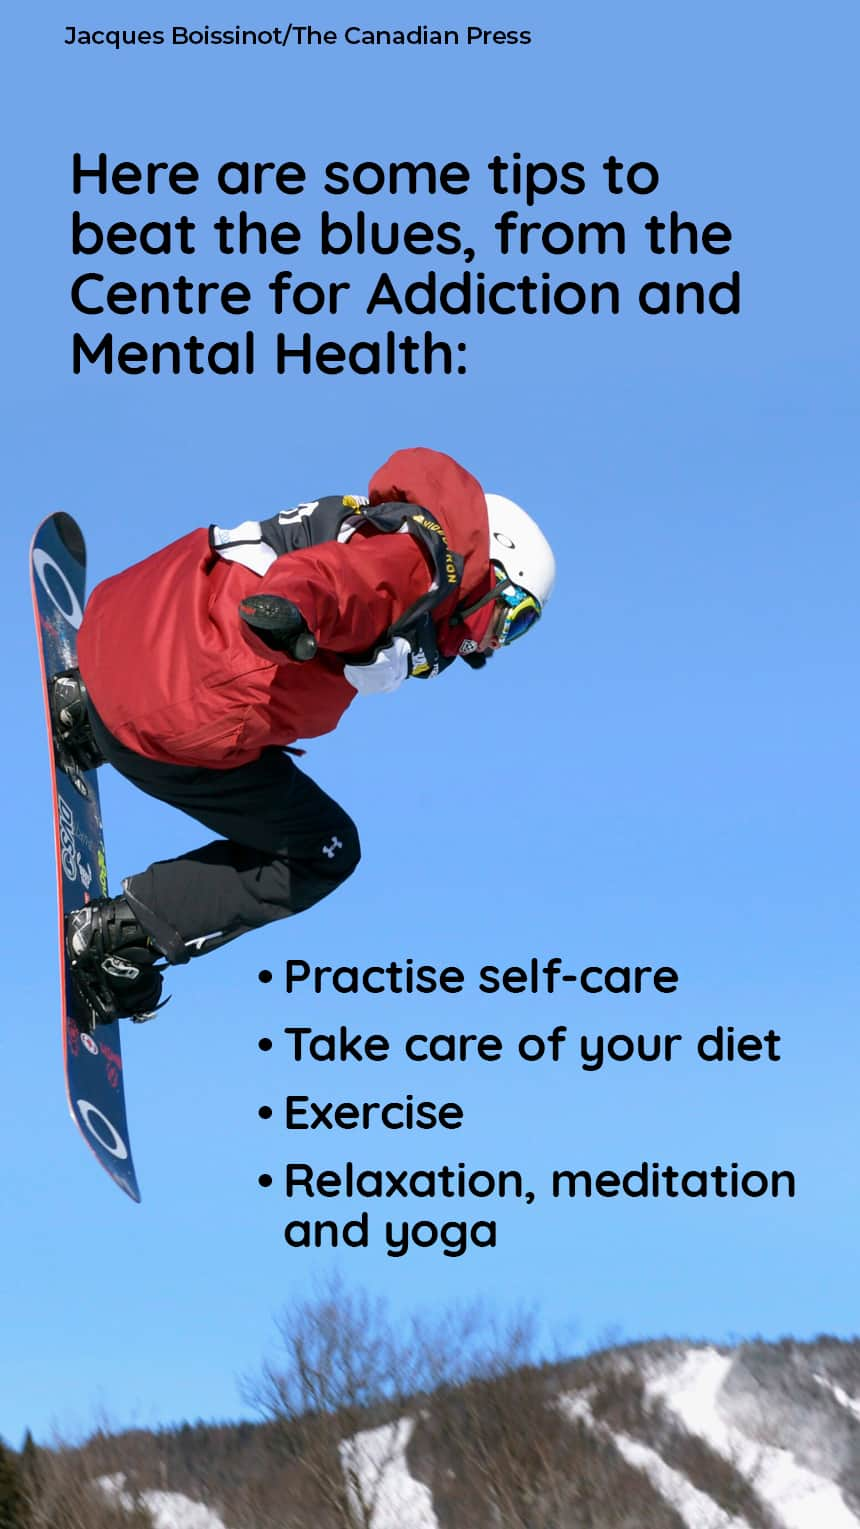 Here are some tips to beat the blues, from the Centre for Addiction and Mental Health:  Practise self-care, Take care of your diet, Exercise, Relaxation, meditation and yoga IMAGE: A snowboarder flying through the sky